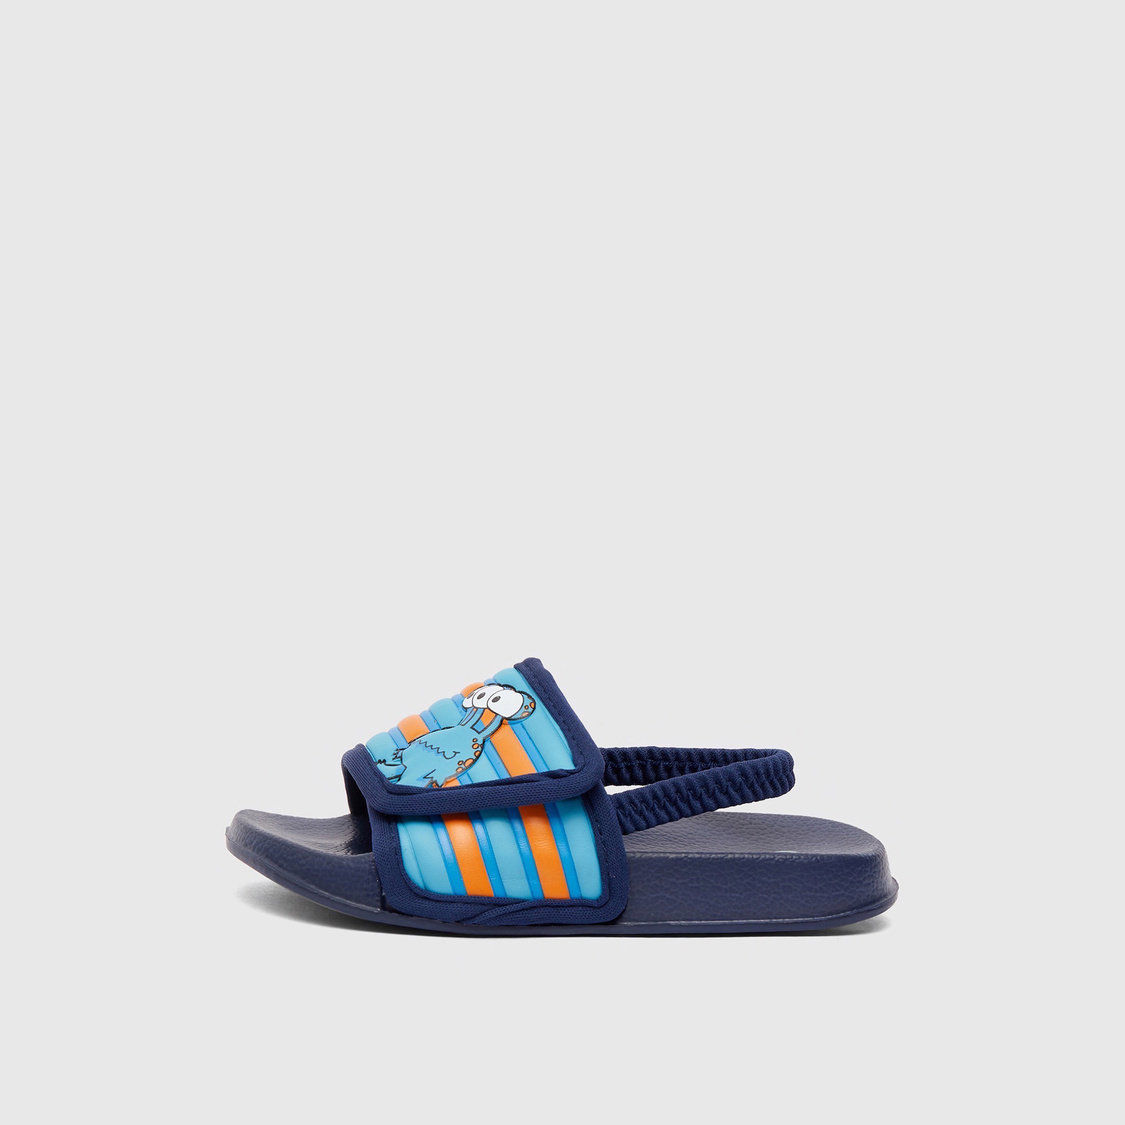 Textured Slides with Elasticised Straps and Vamp Band